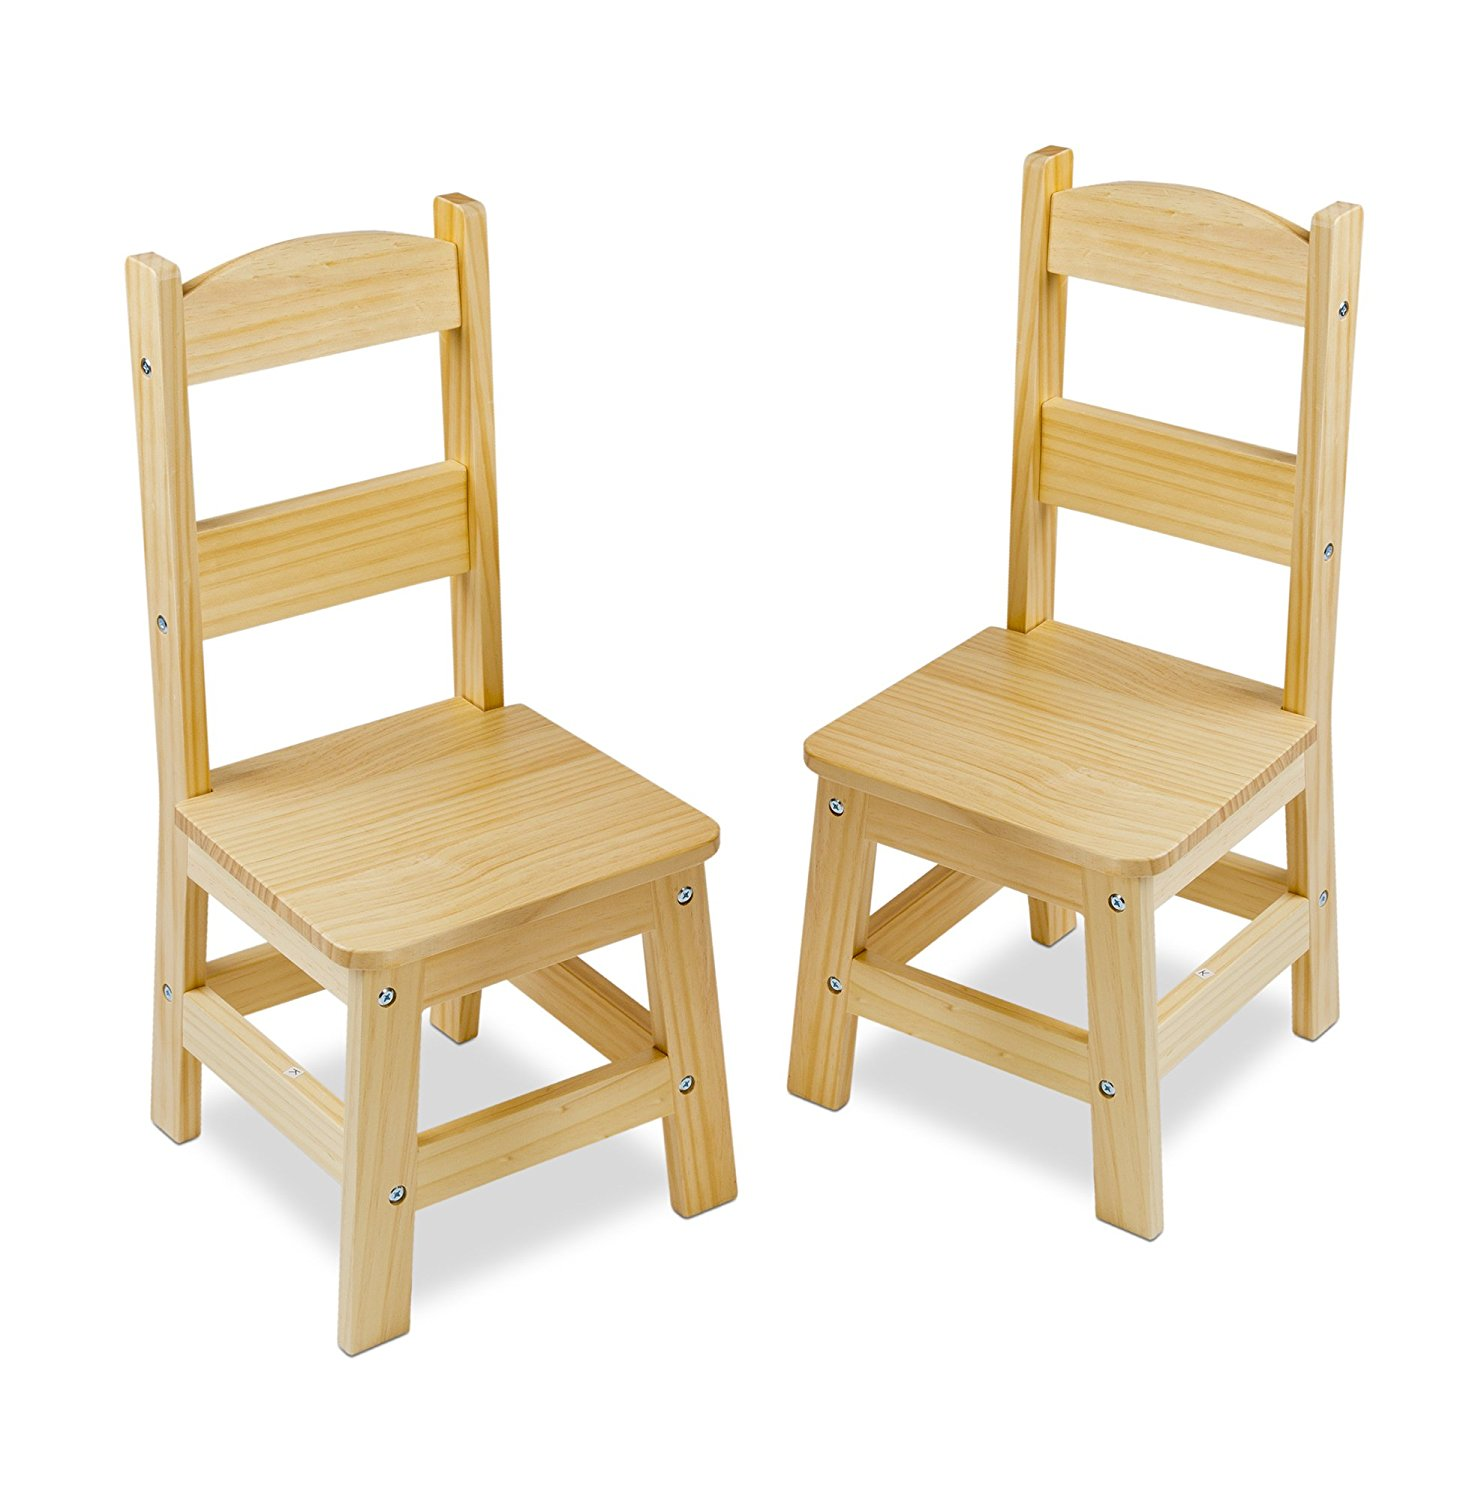 Chair Wooden Melissa And Doug Solid Wood Chairs Set Of 2 Light Finish